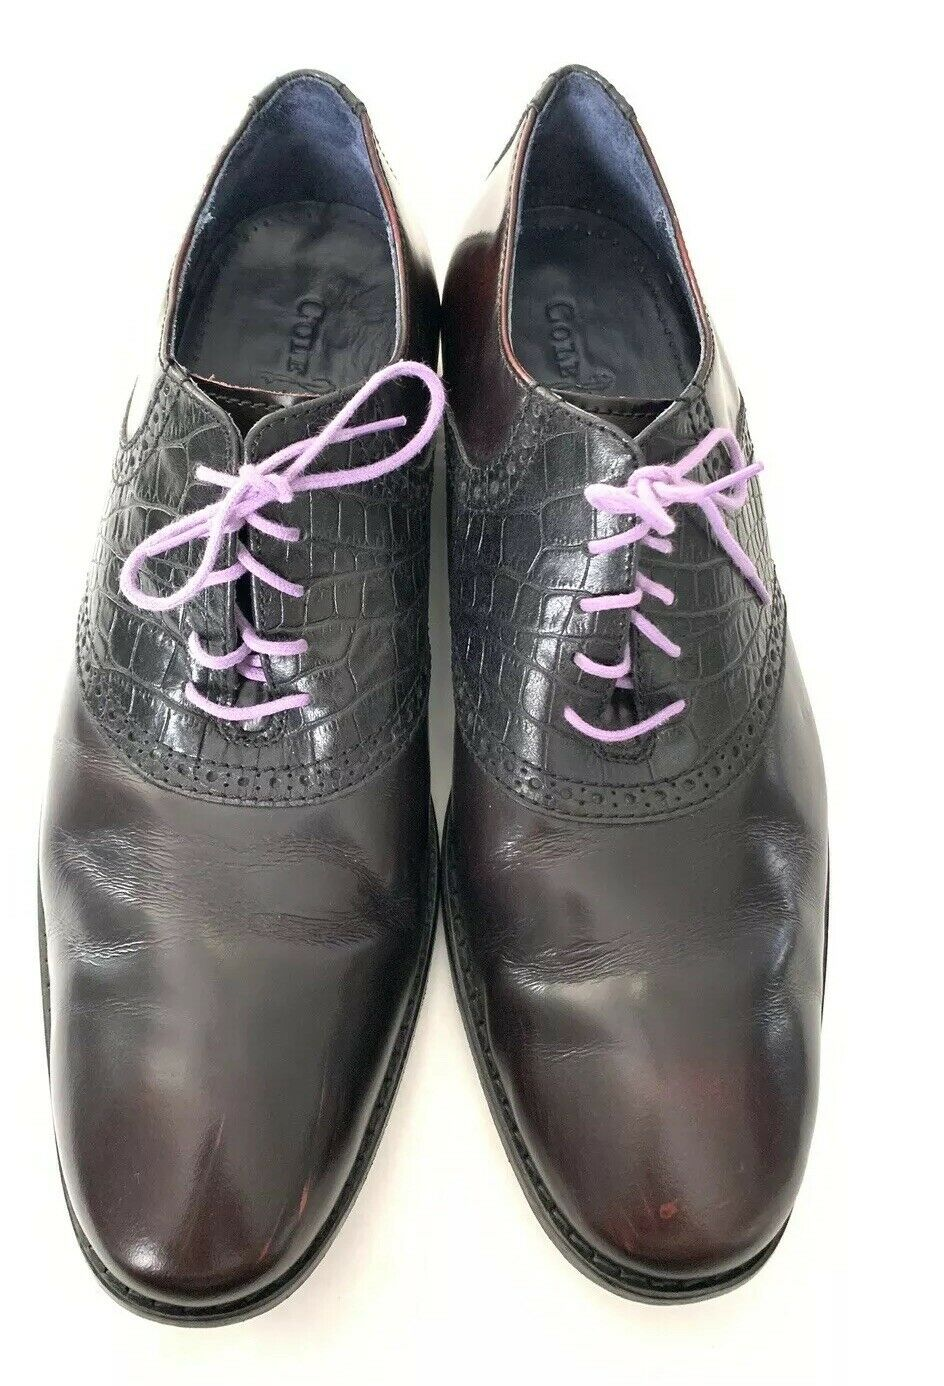 COLE HAAN Wing-Tip Oxfords nero Burgundy viola Laces Mens 11 M Very Good Cond